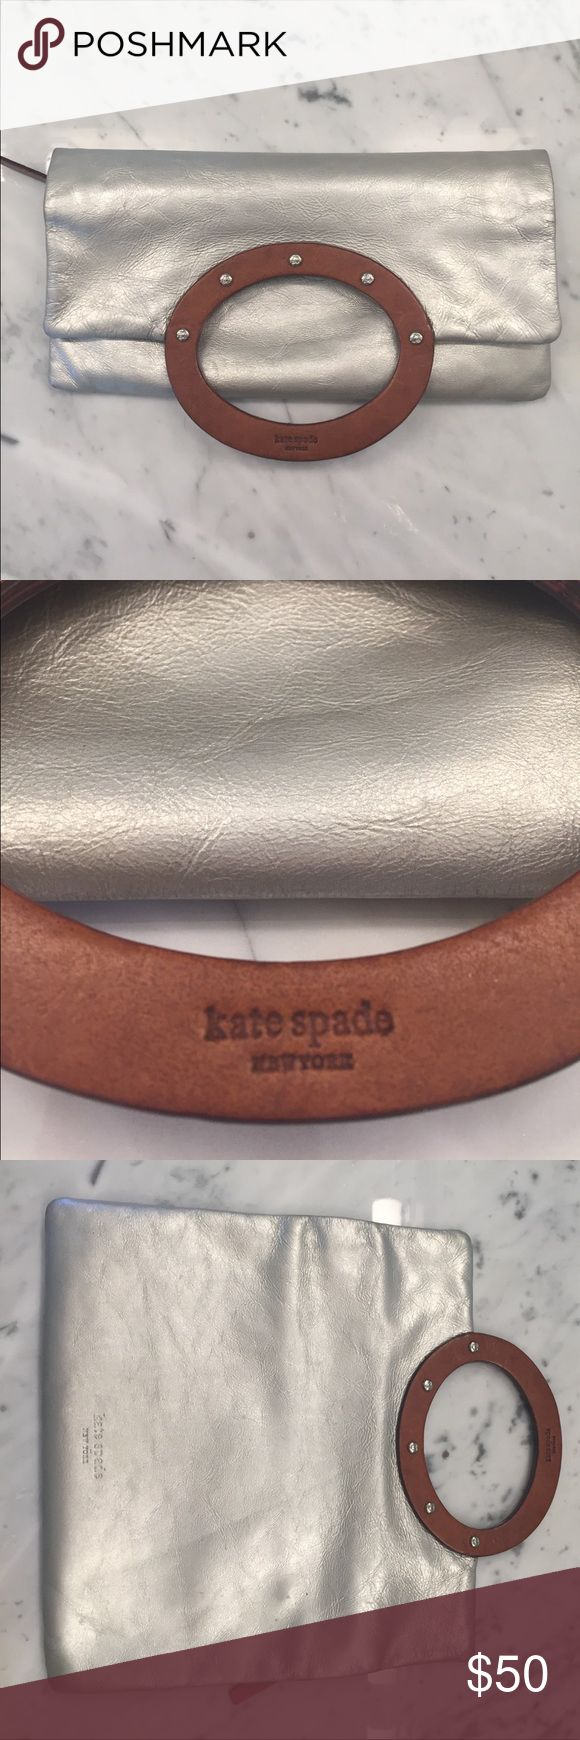 """Silver Kate Spade Clutch This adorable metallic clutch makes any outfit. It has a zipper on one side and folds in half, or you can hold it by the round wooden handle. Some small signs of wear - there is a mark on the zipper side (pictured) which is barely noticeable, especially when the clutch is folded and carried. Lots of room inside with one side pocket. Measures 10"""" when lying flat, 6"""" folded. kate spade Bags Clutches & Wristlets"""